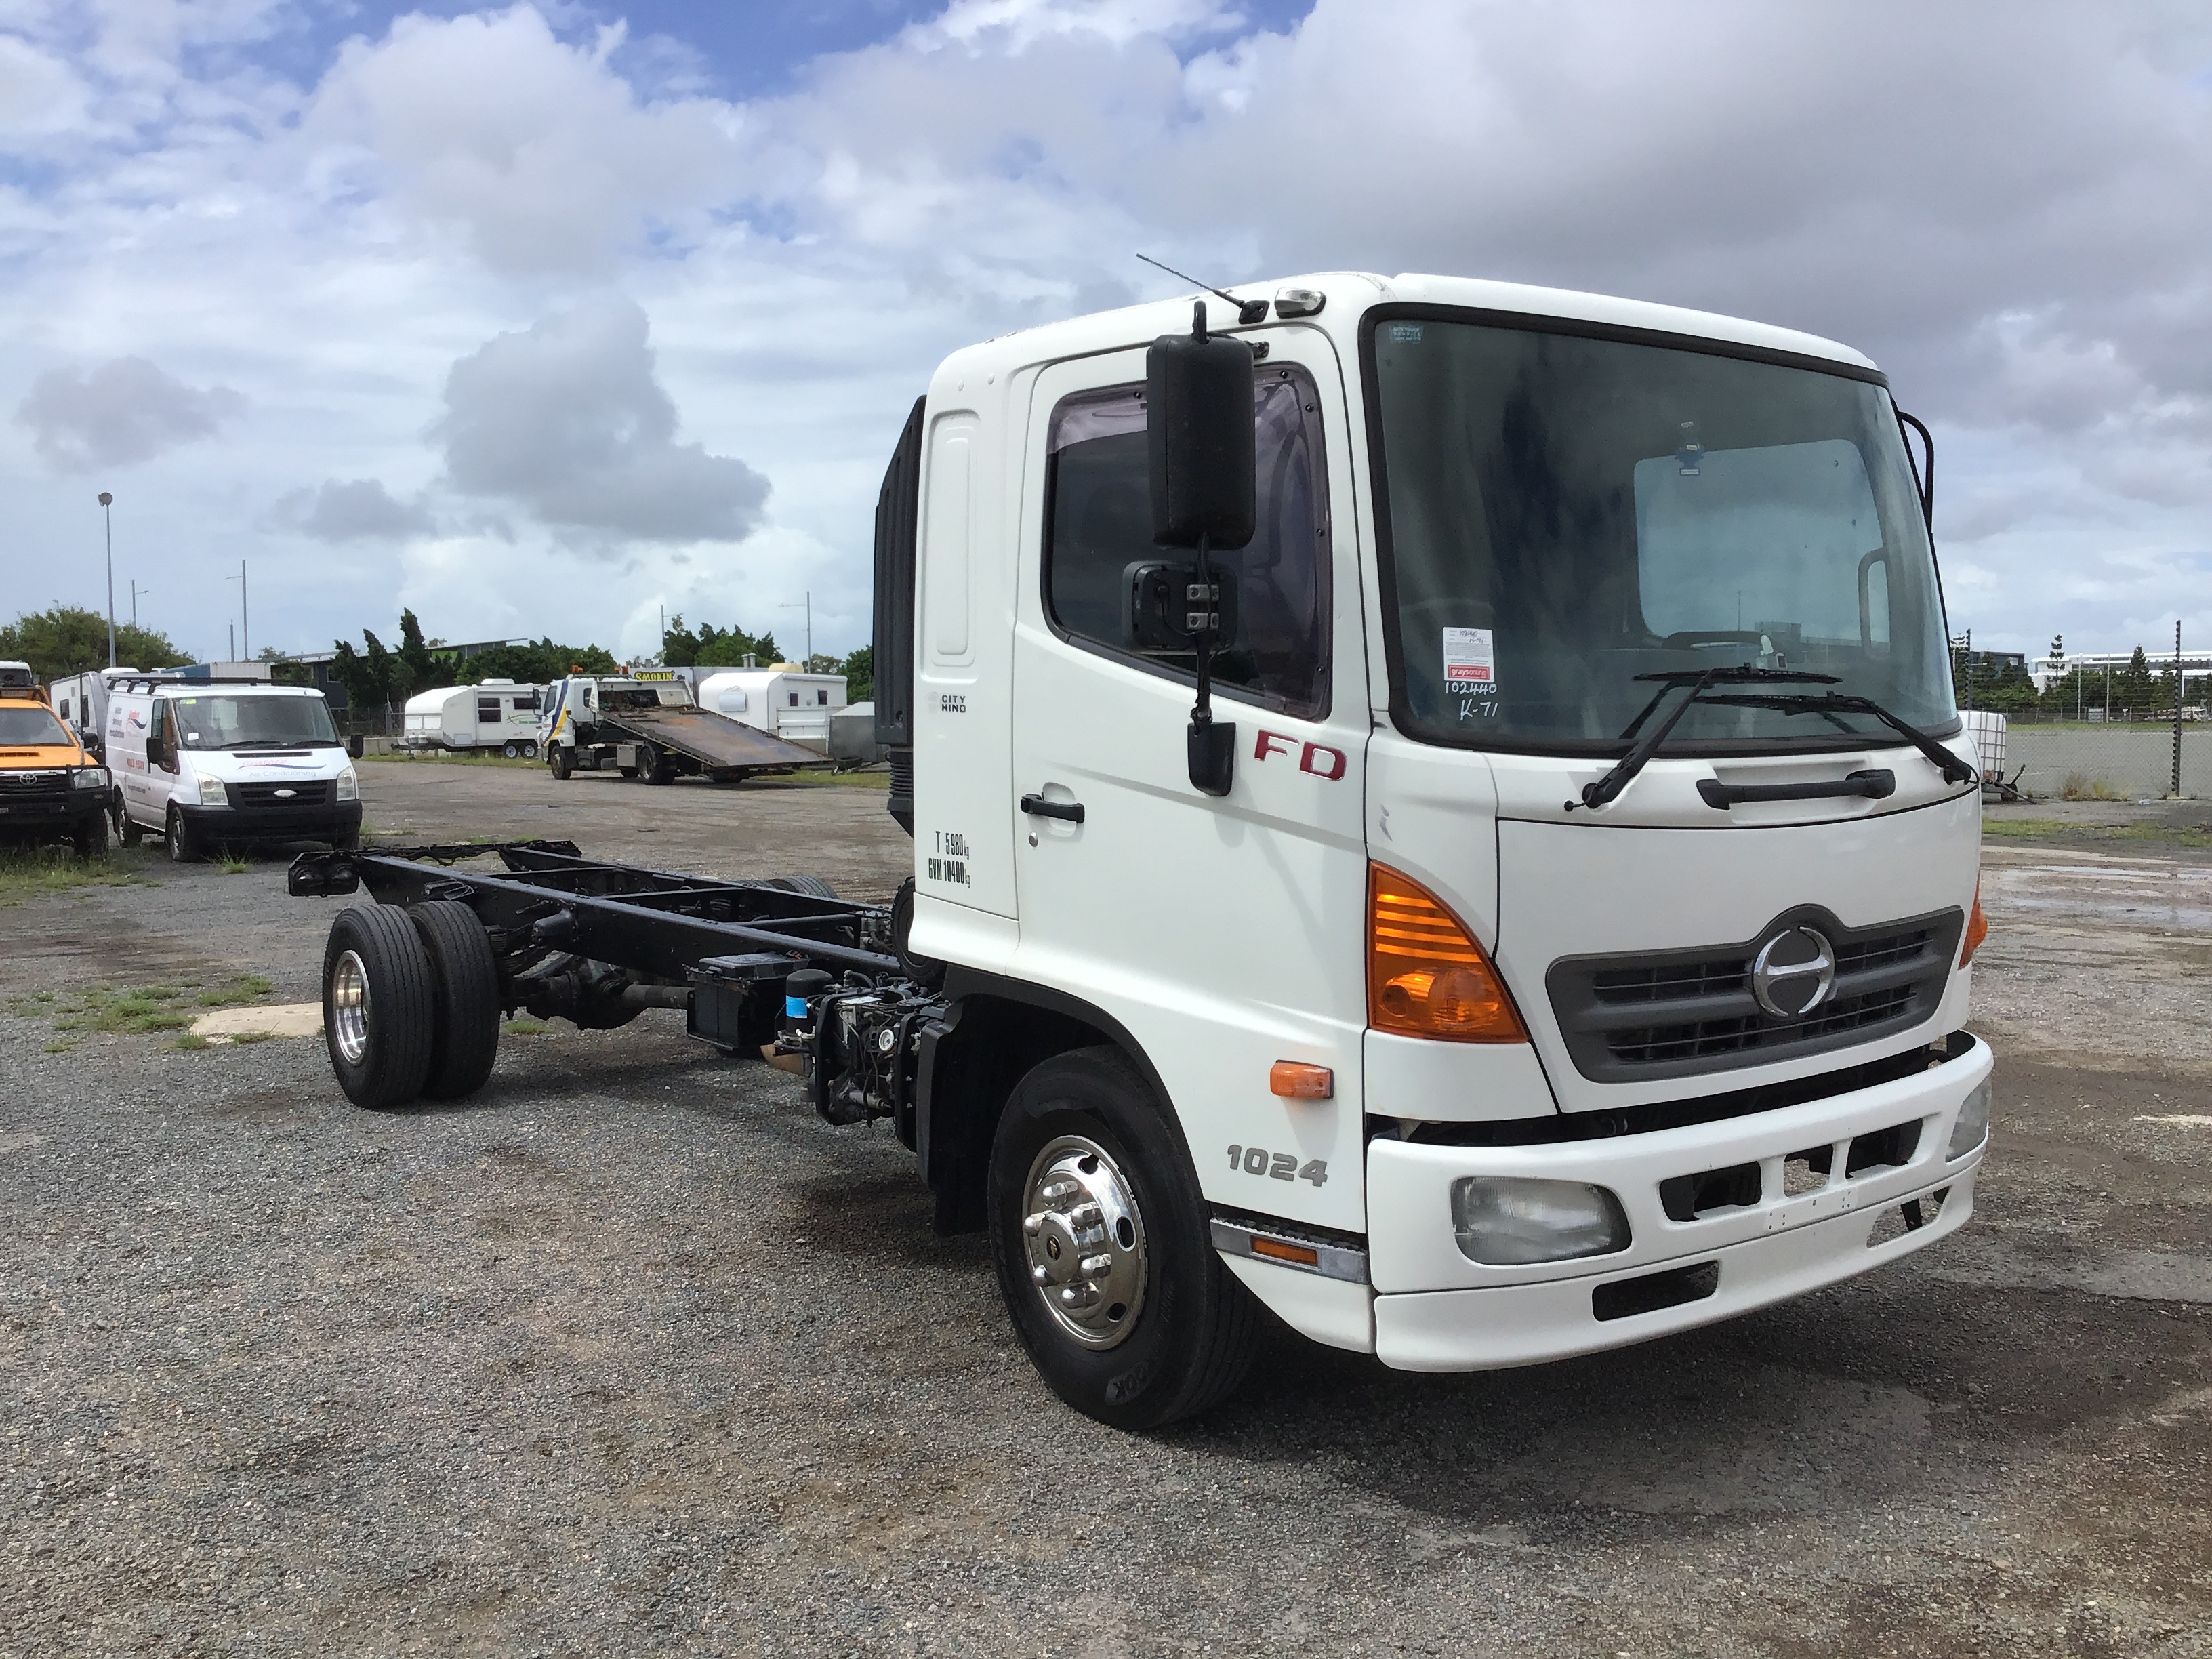 2010 Hino FD 4 x 2 Cab Chassis Truck